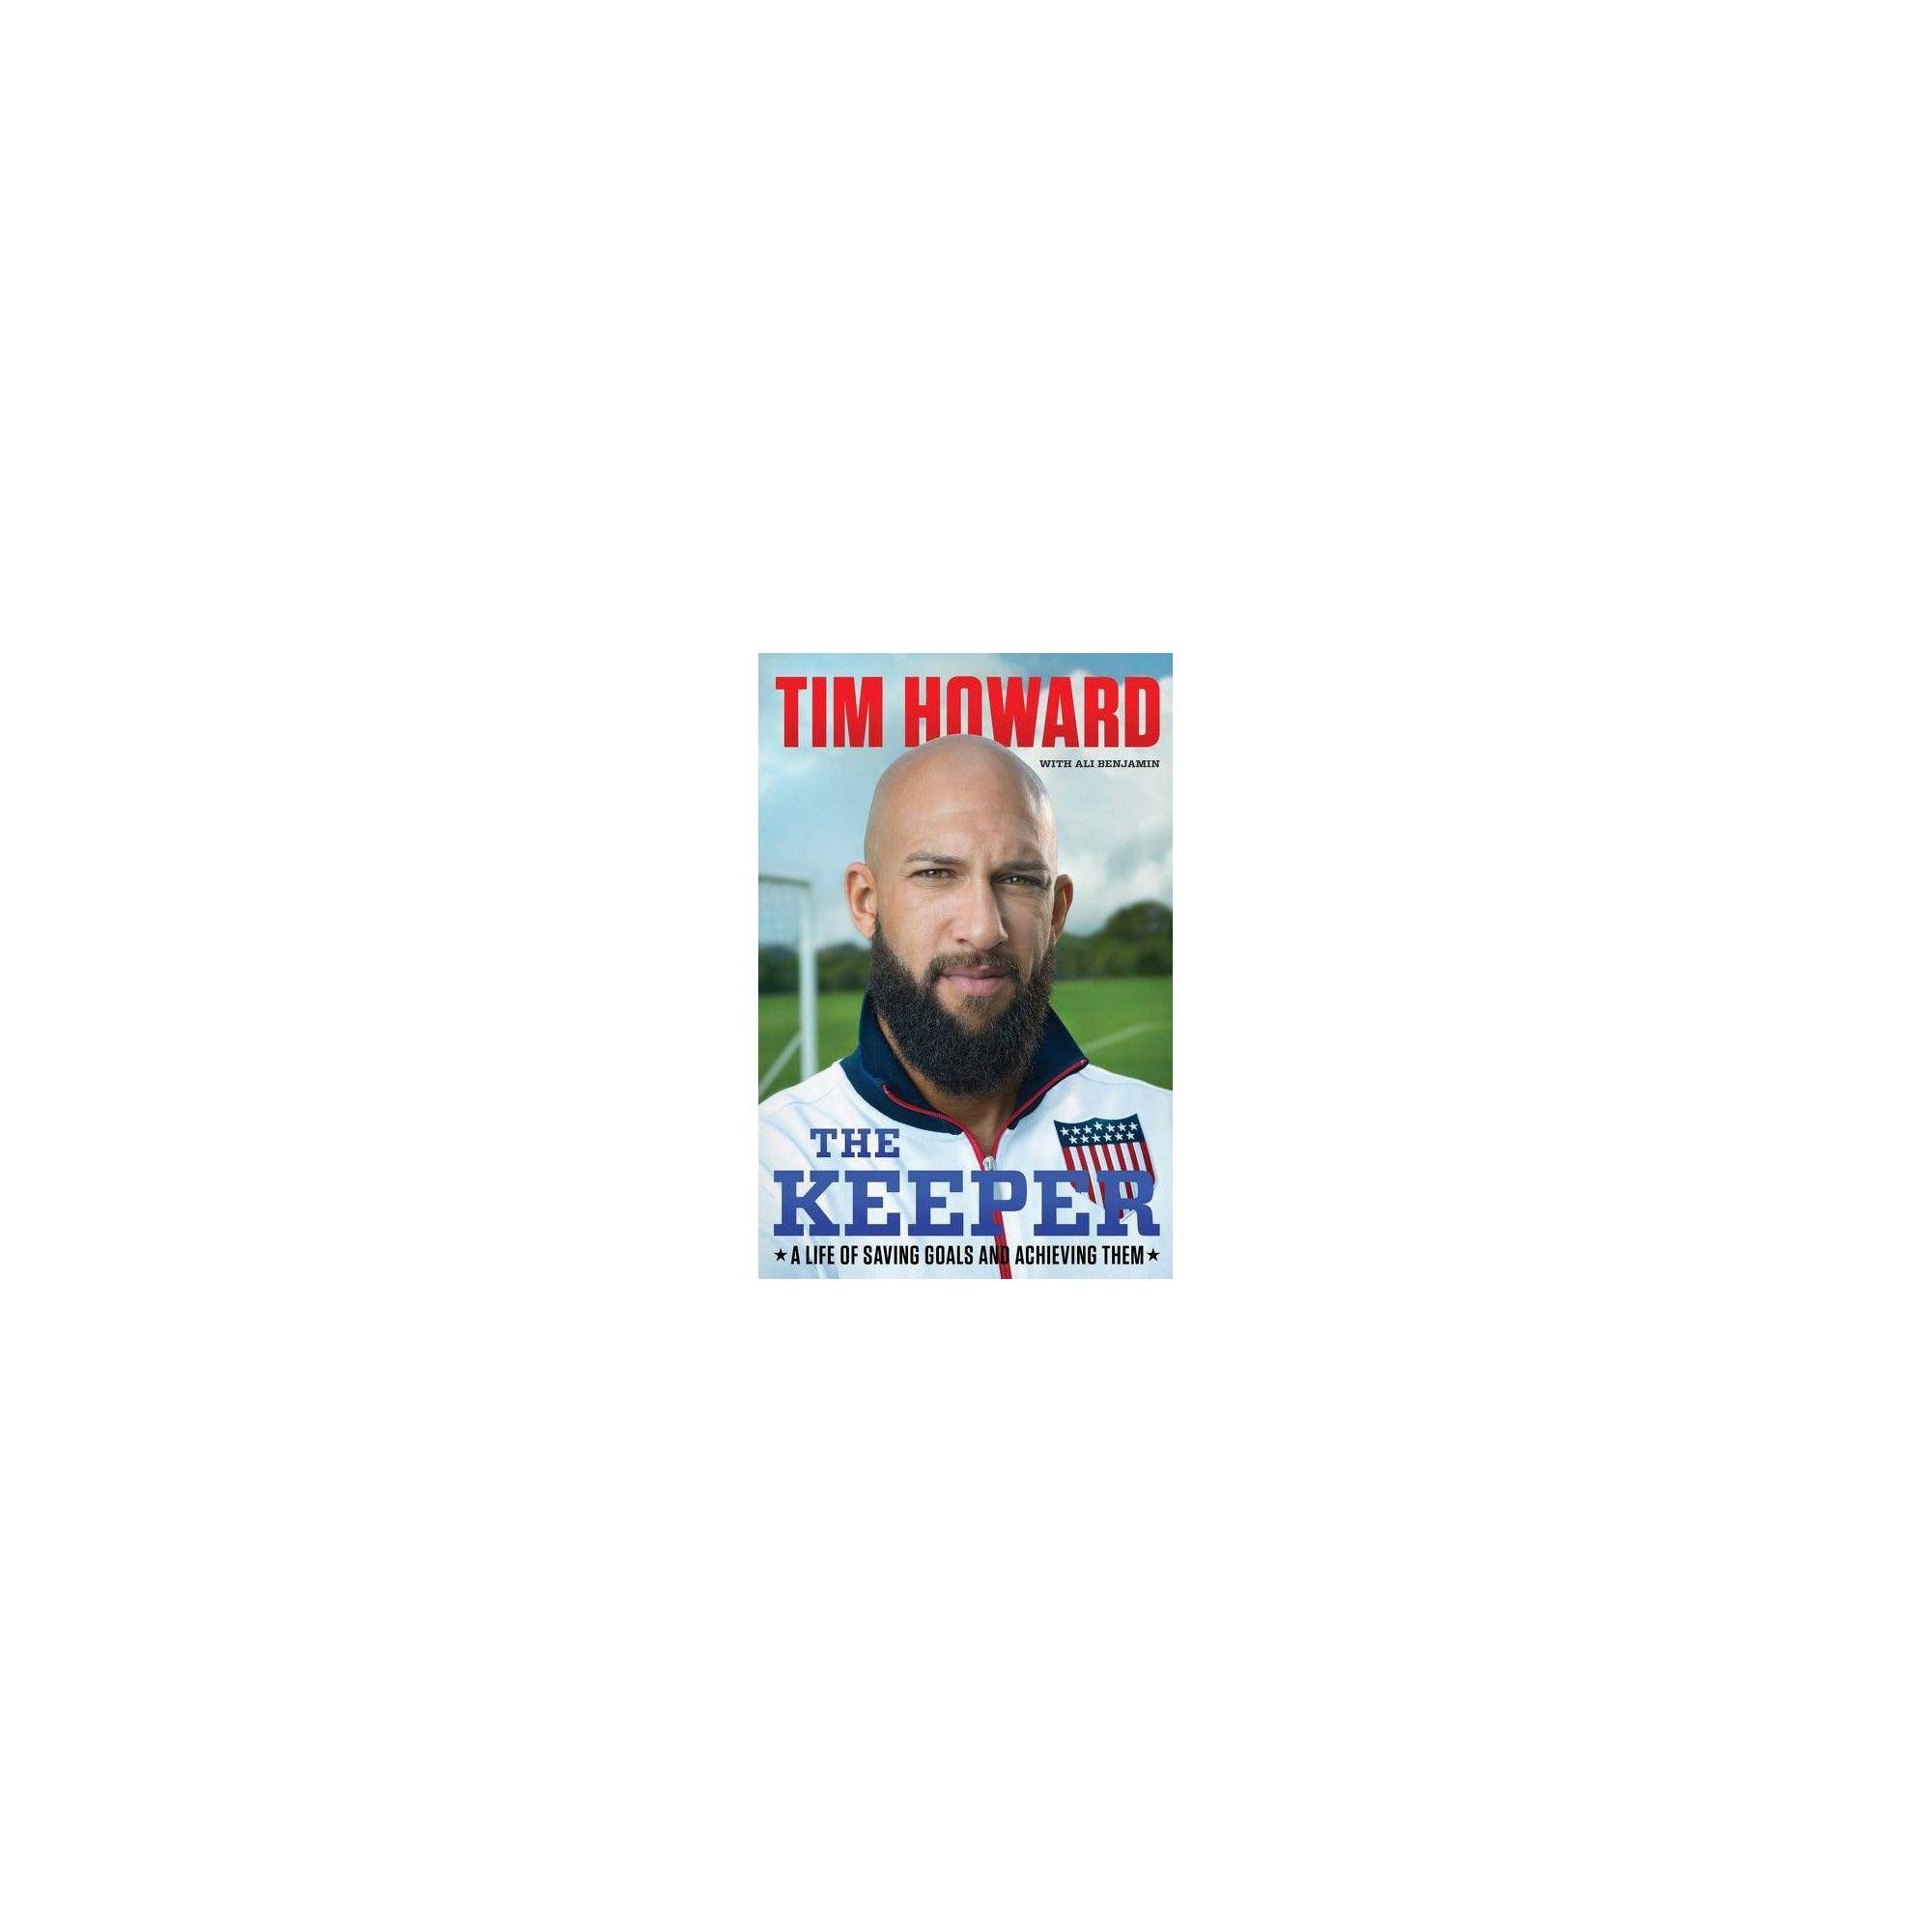 The Keeper - by Tim Howard (Hardcover) | Hardcover, High ...